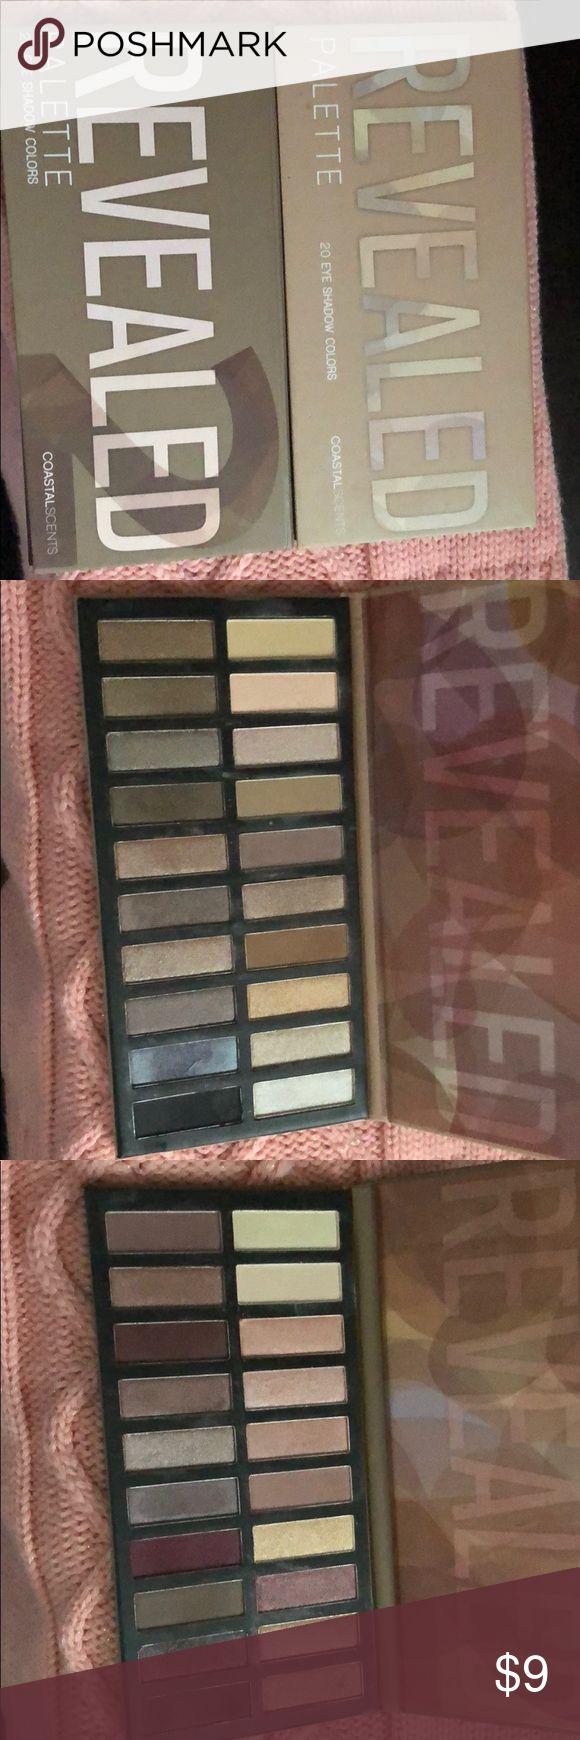 Coastal Scents Revealed 1 & 2 Palettes Coastal Scents Revealed 1 & 2 eyeshadow palettes.  Only swatched both these palettes!  They were bought and got lost in my stash!  All shadows have been sanitized with rubbing alcohol! Coastal Scents Makeup Eyeshadow